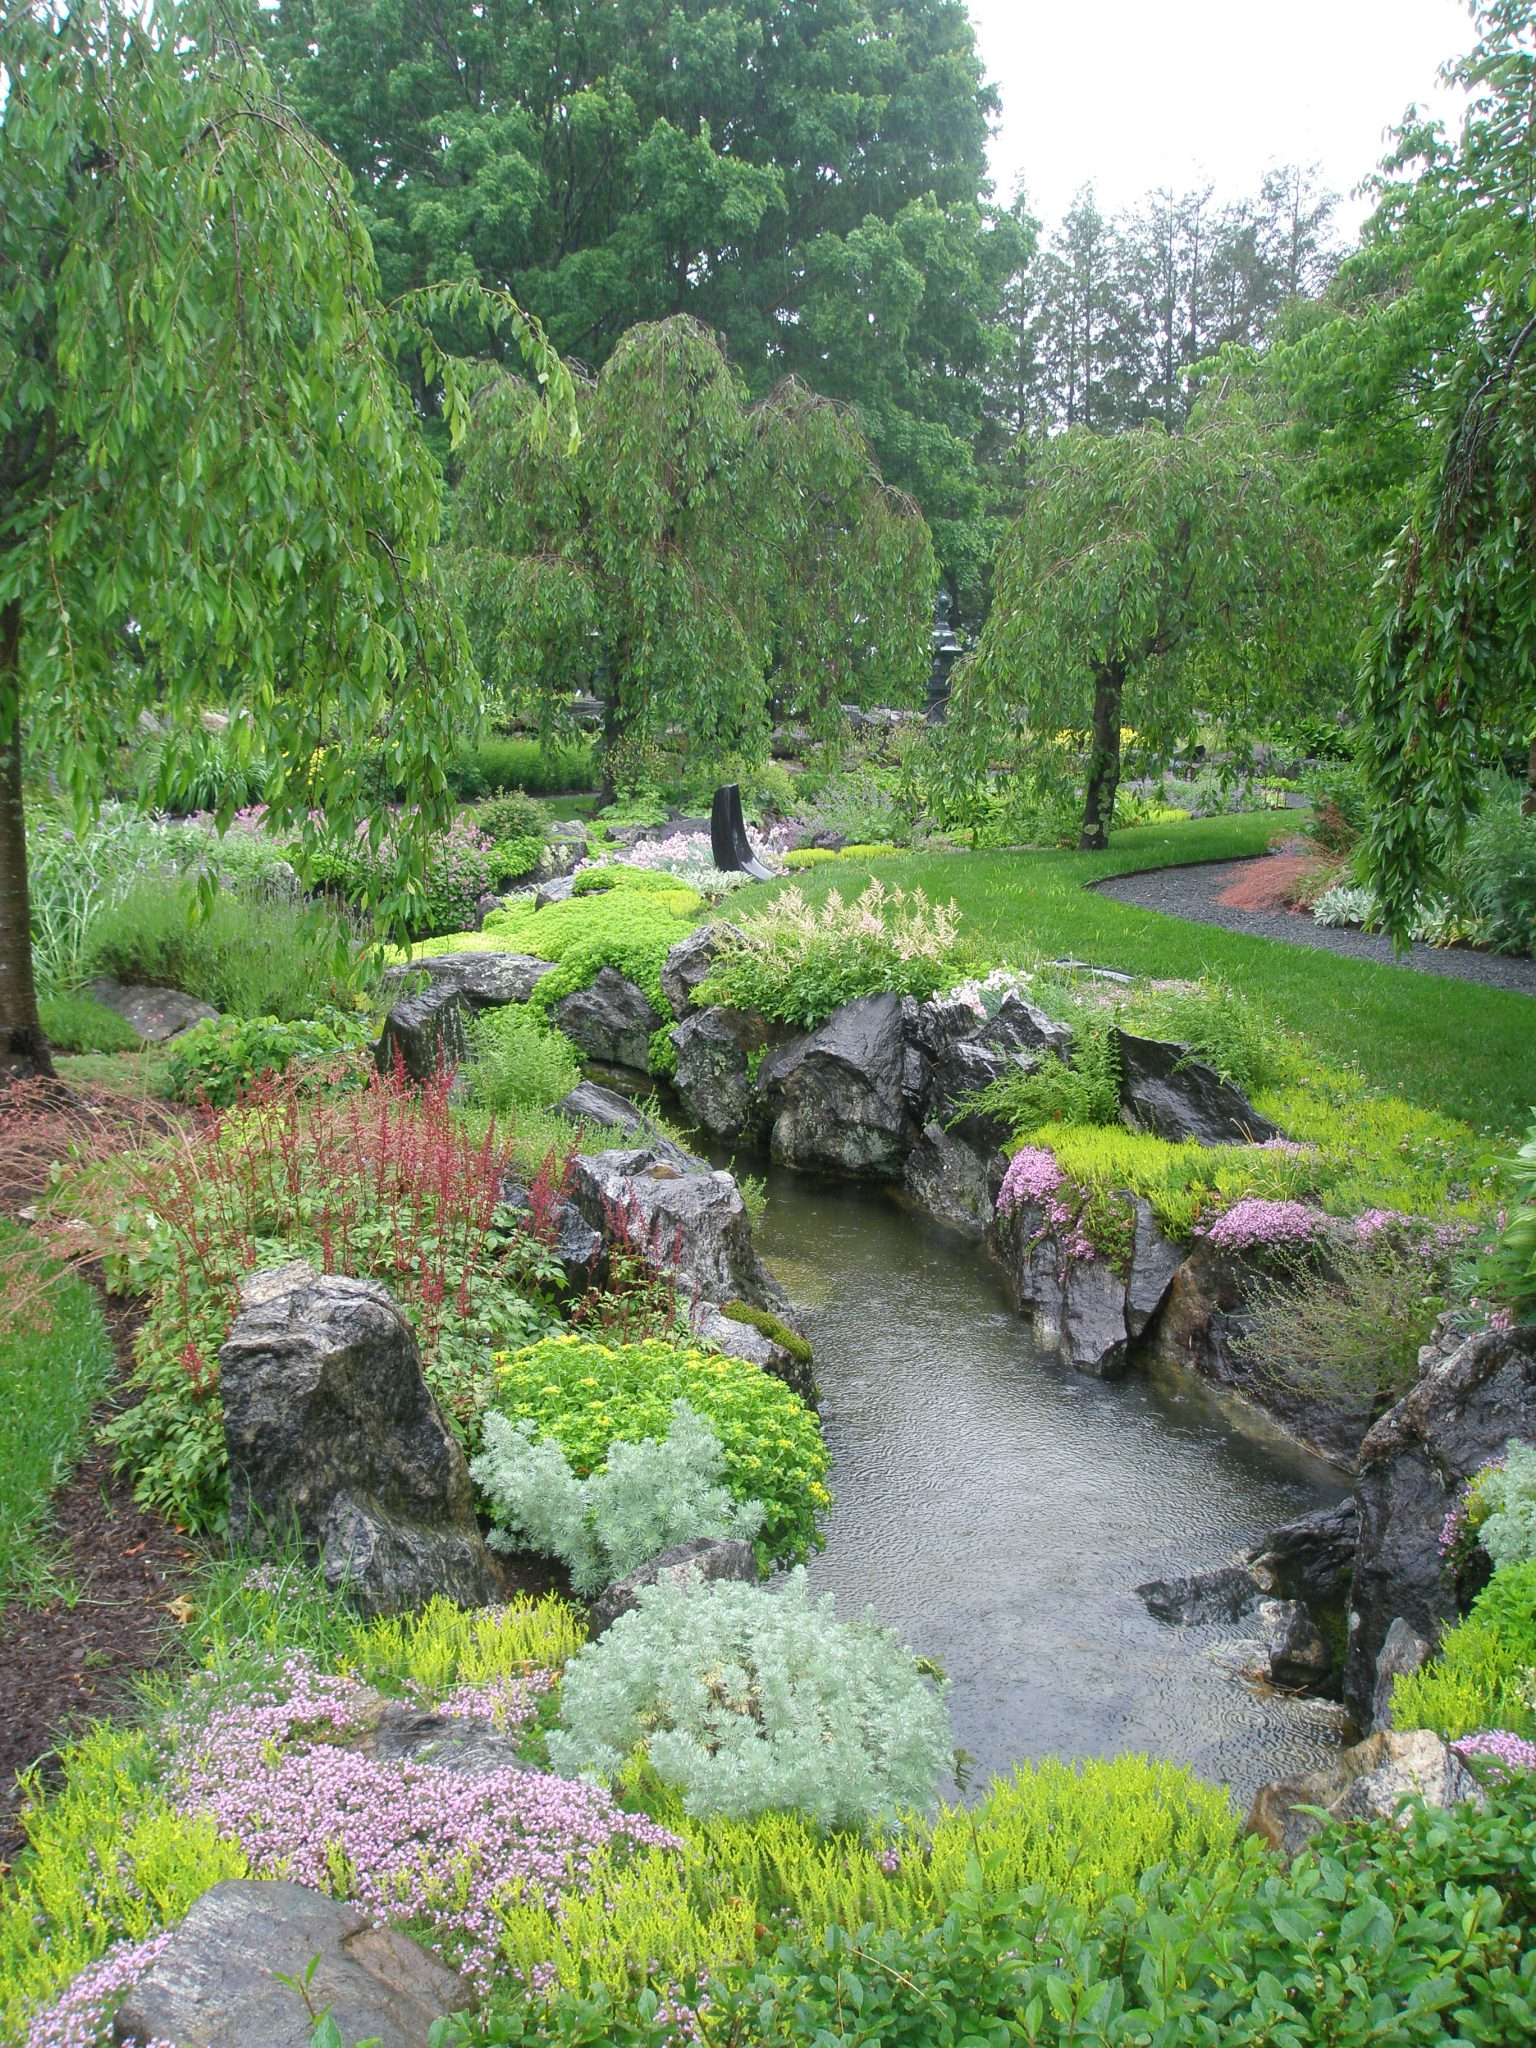 The Brook Garden